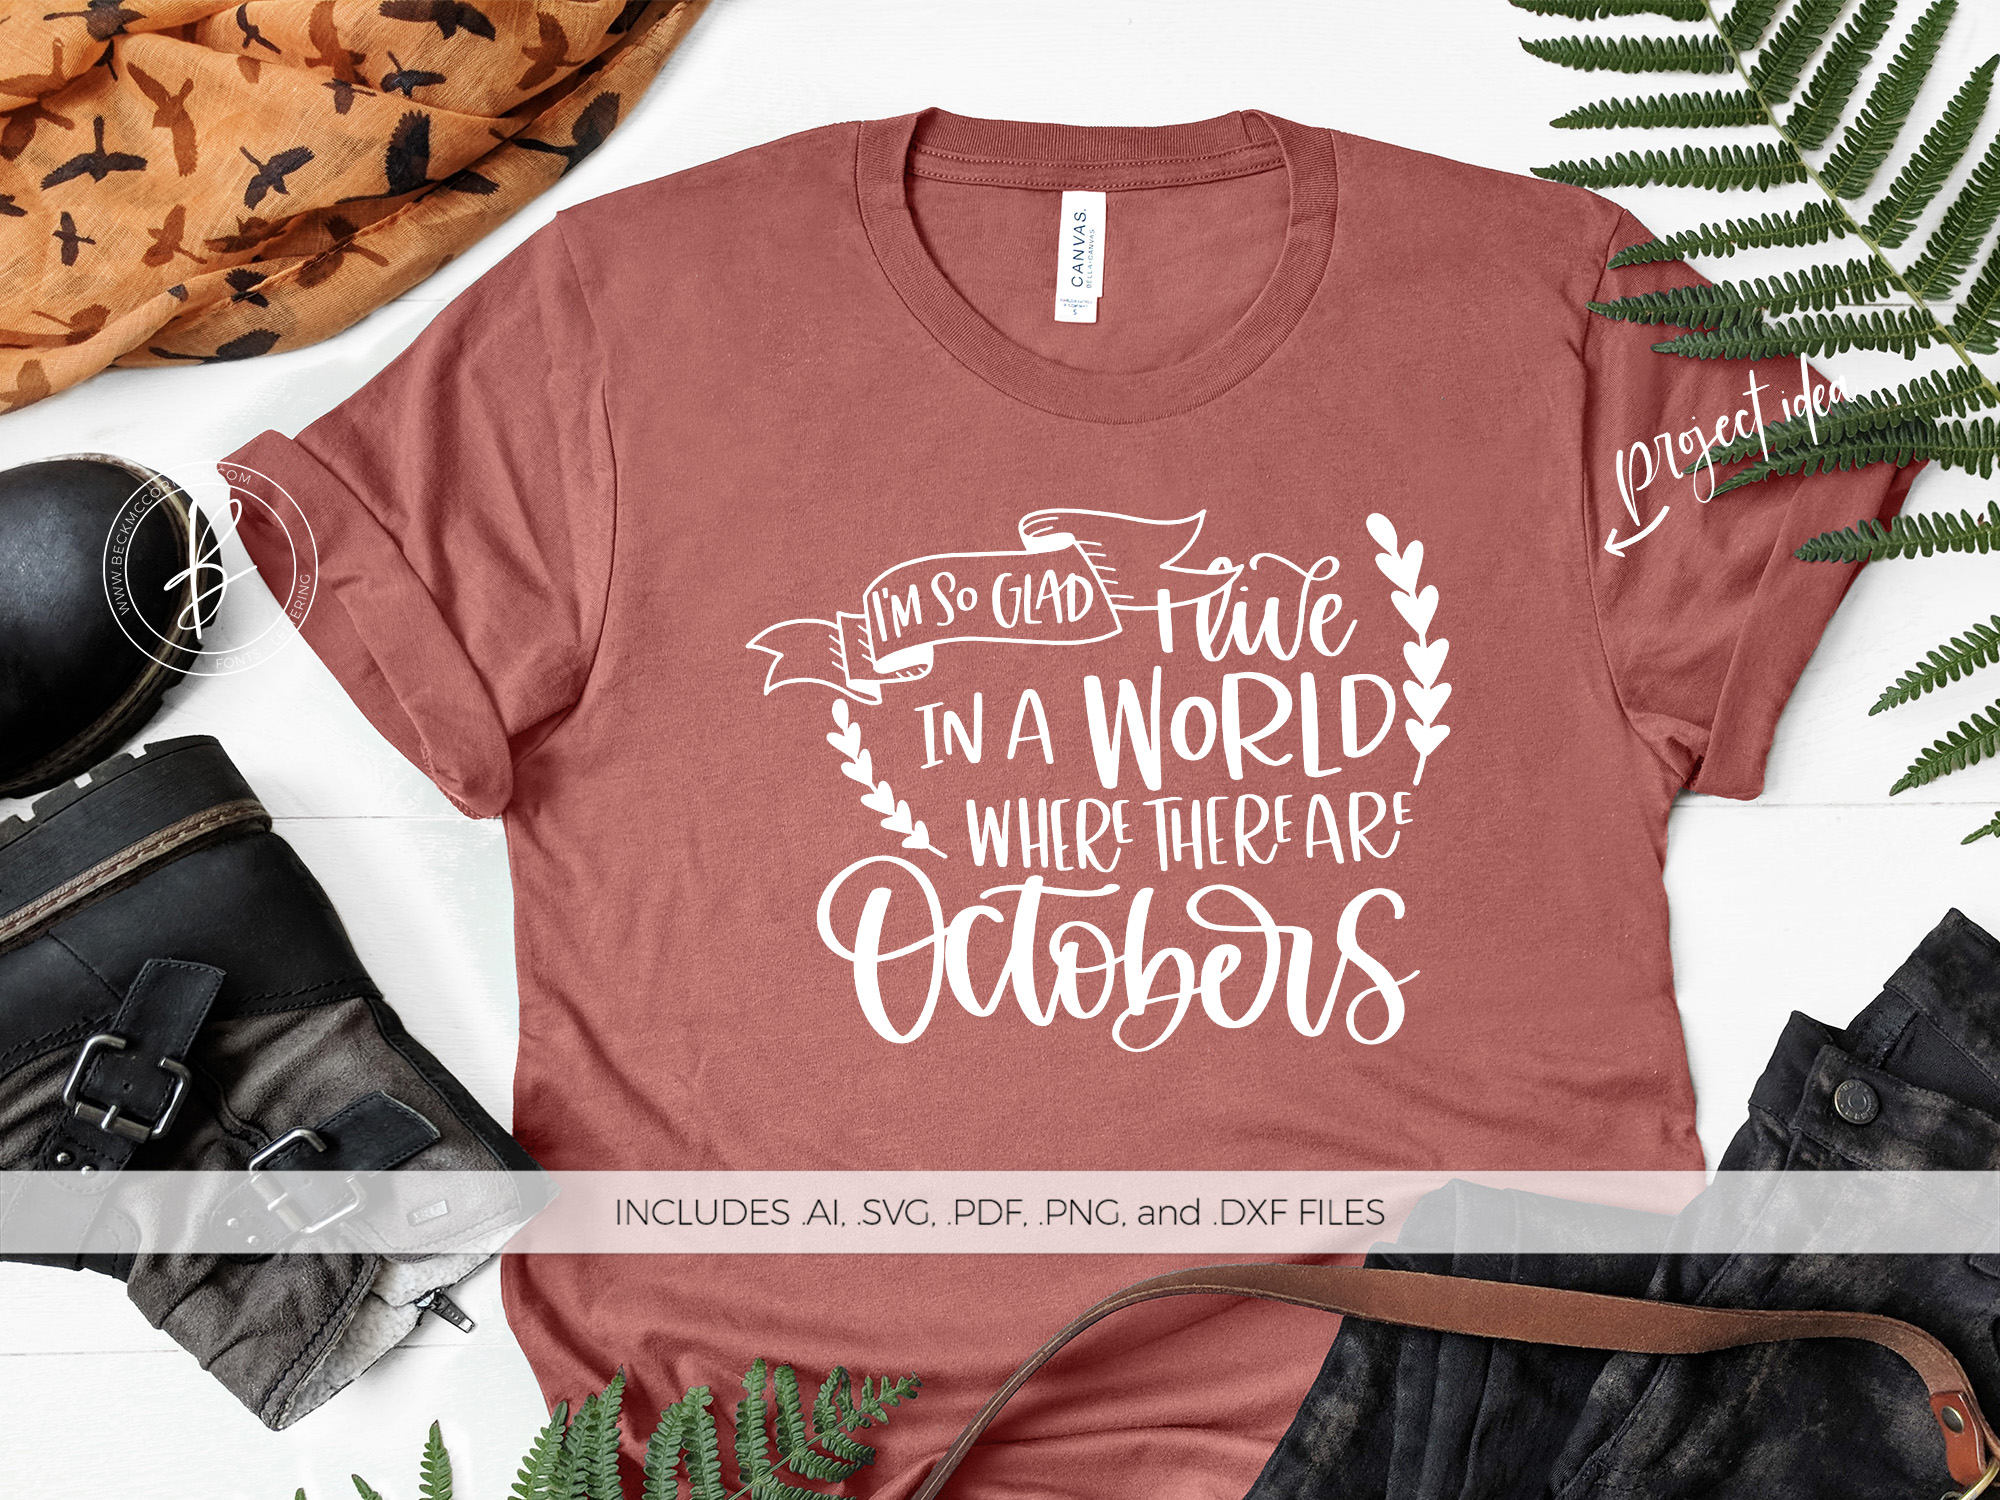 Download Free Live In A World With Octobers Graphic By Beckmccormick for Cricut Explore, Silhouette and other cutting machines.